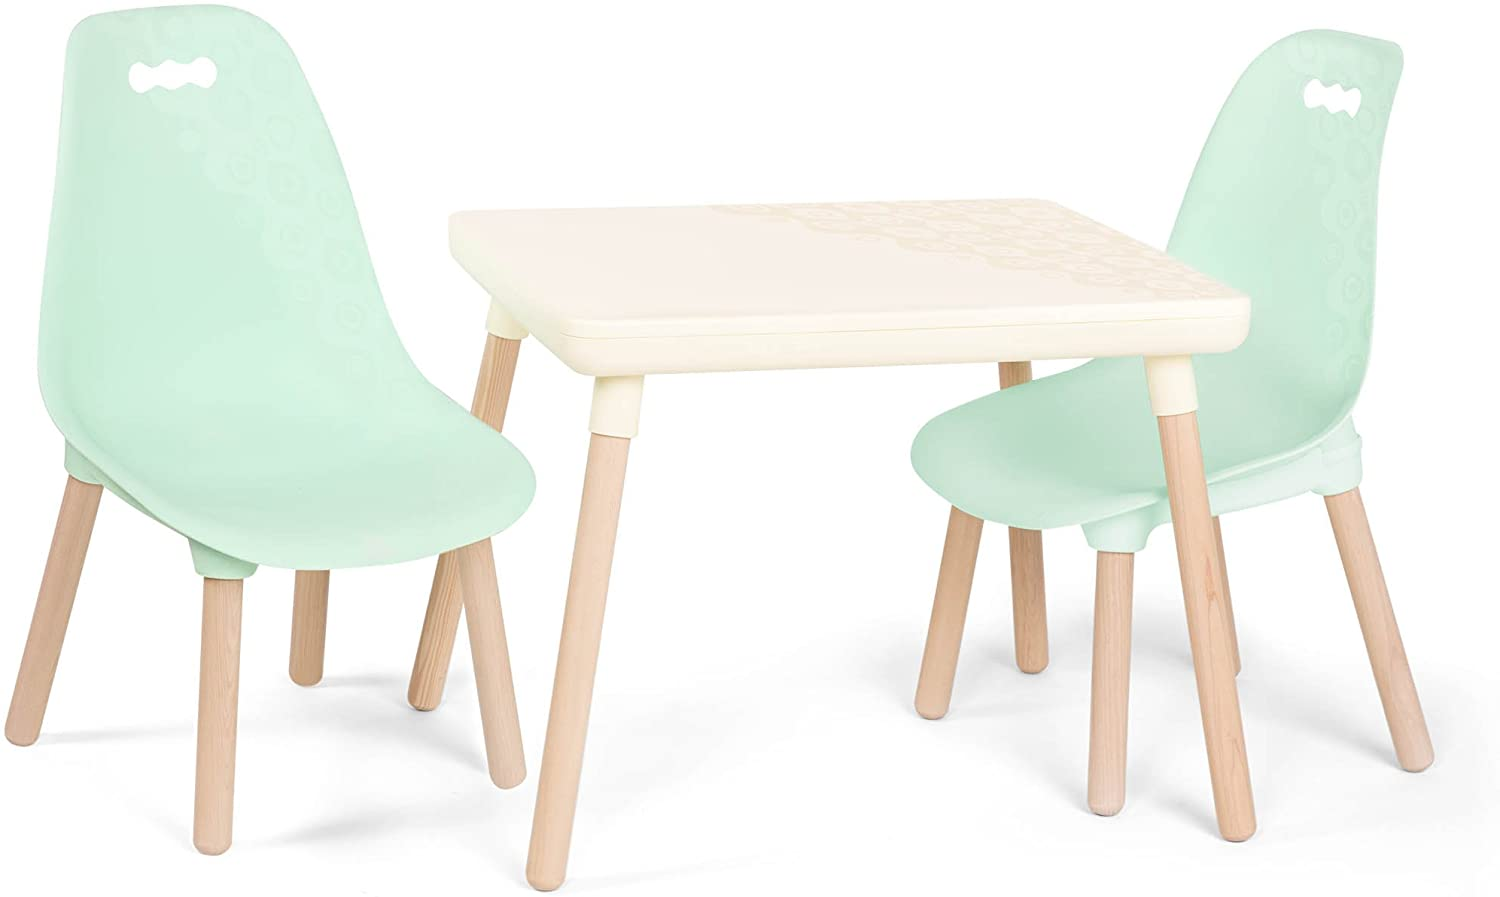 Amazon Com B Spaces By Battat Kids Furniture Set 1 Craft Table 2 Kids Chairs With Natural Wooden Legs Ivory And Mint Toys Games